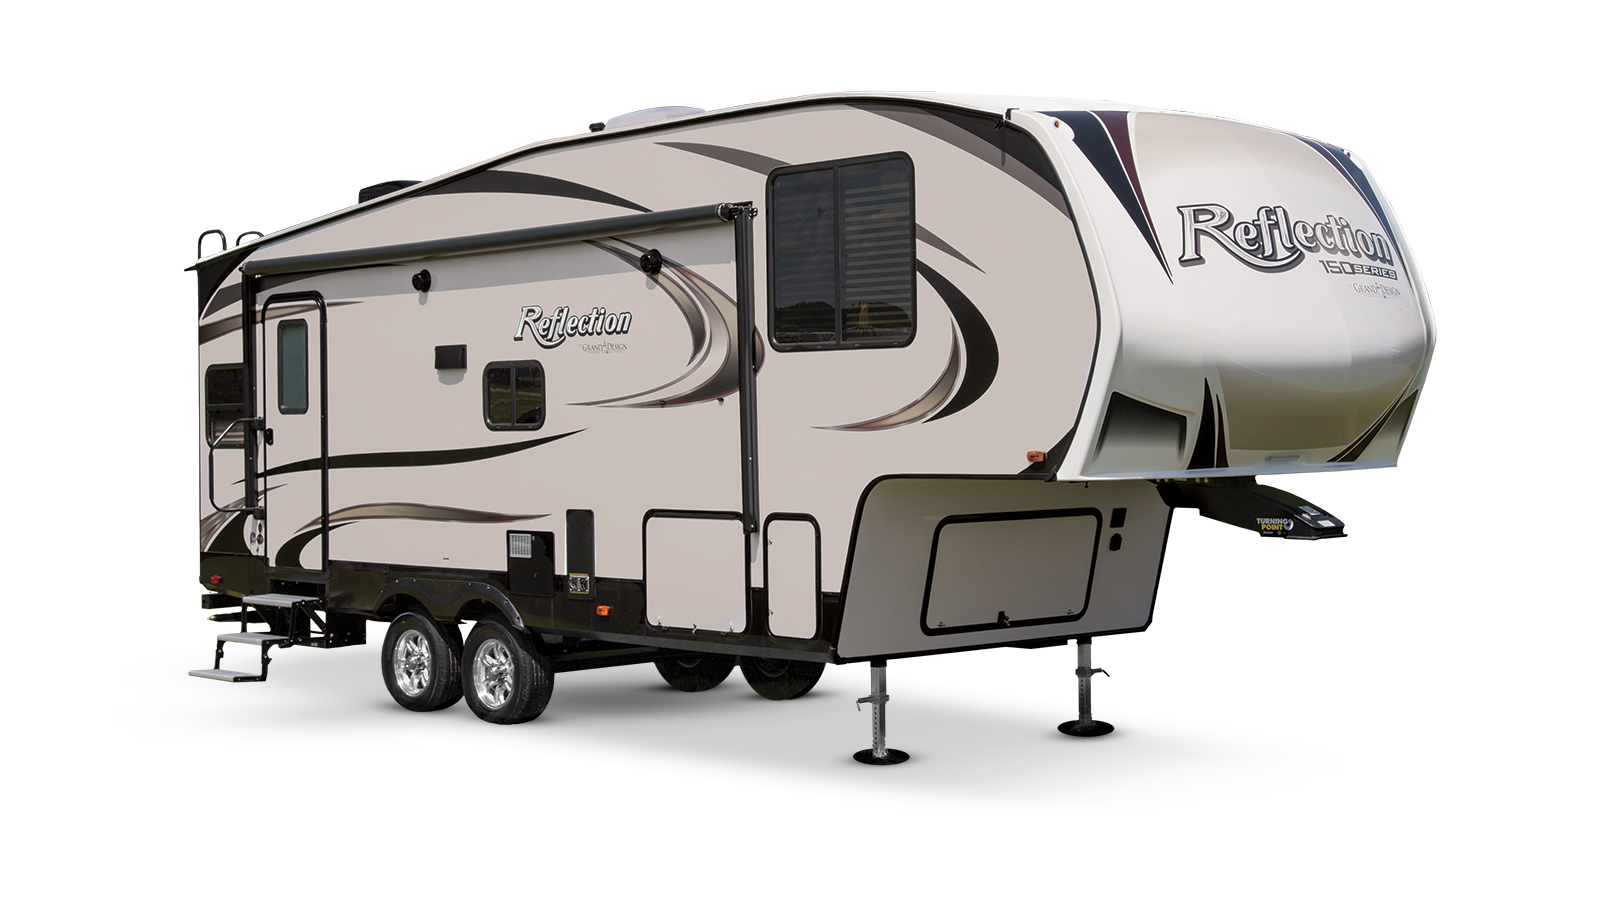 Top 5 Fifth Wheel RVs: Grand Design Reflection 150 Series